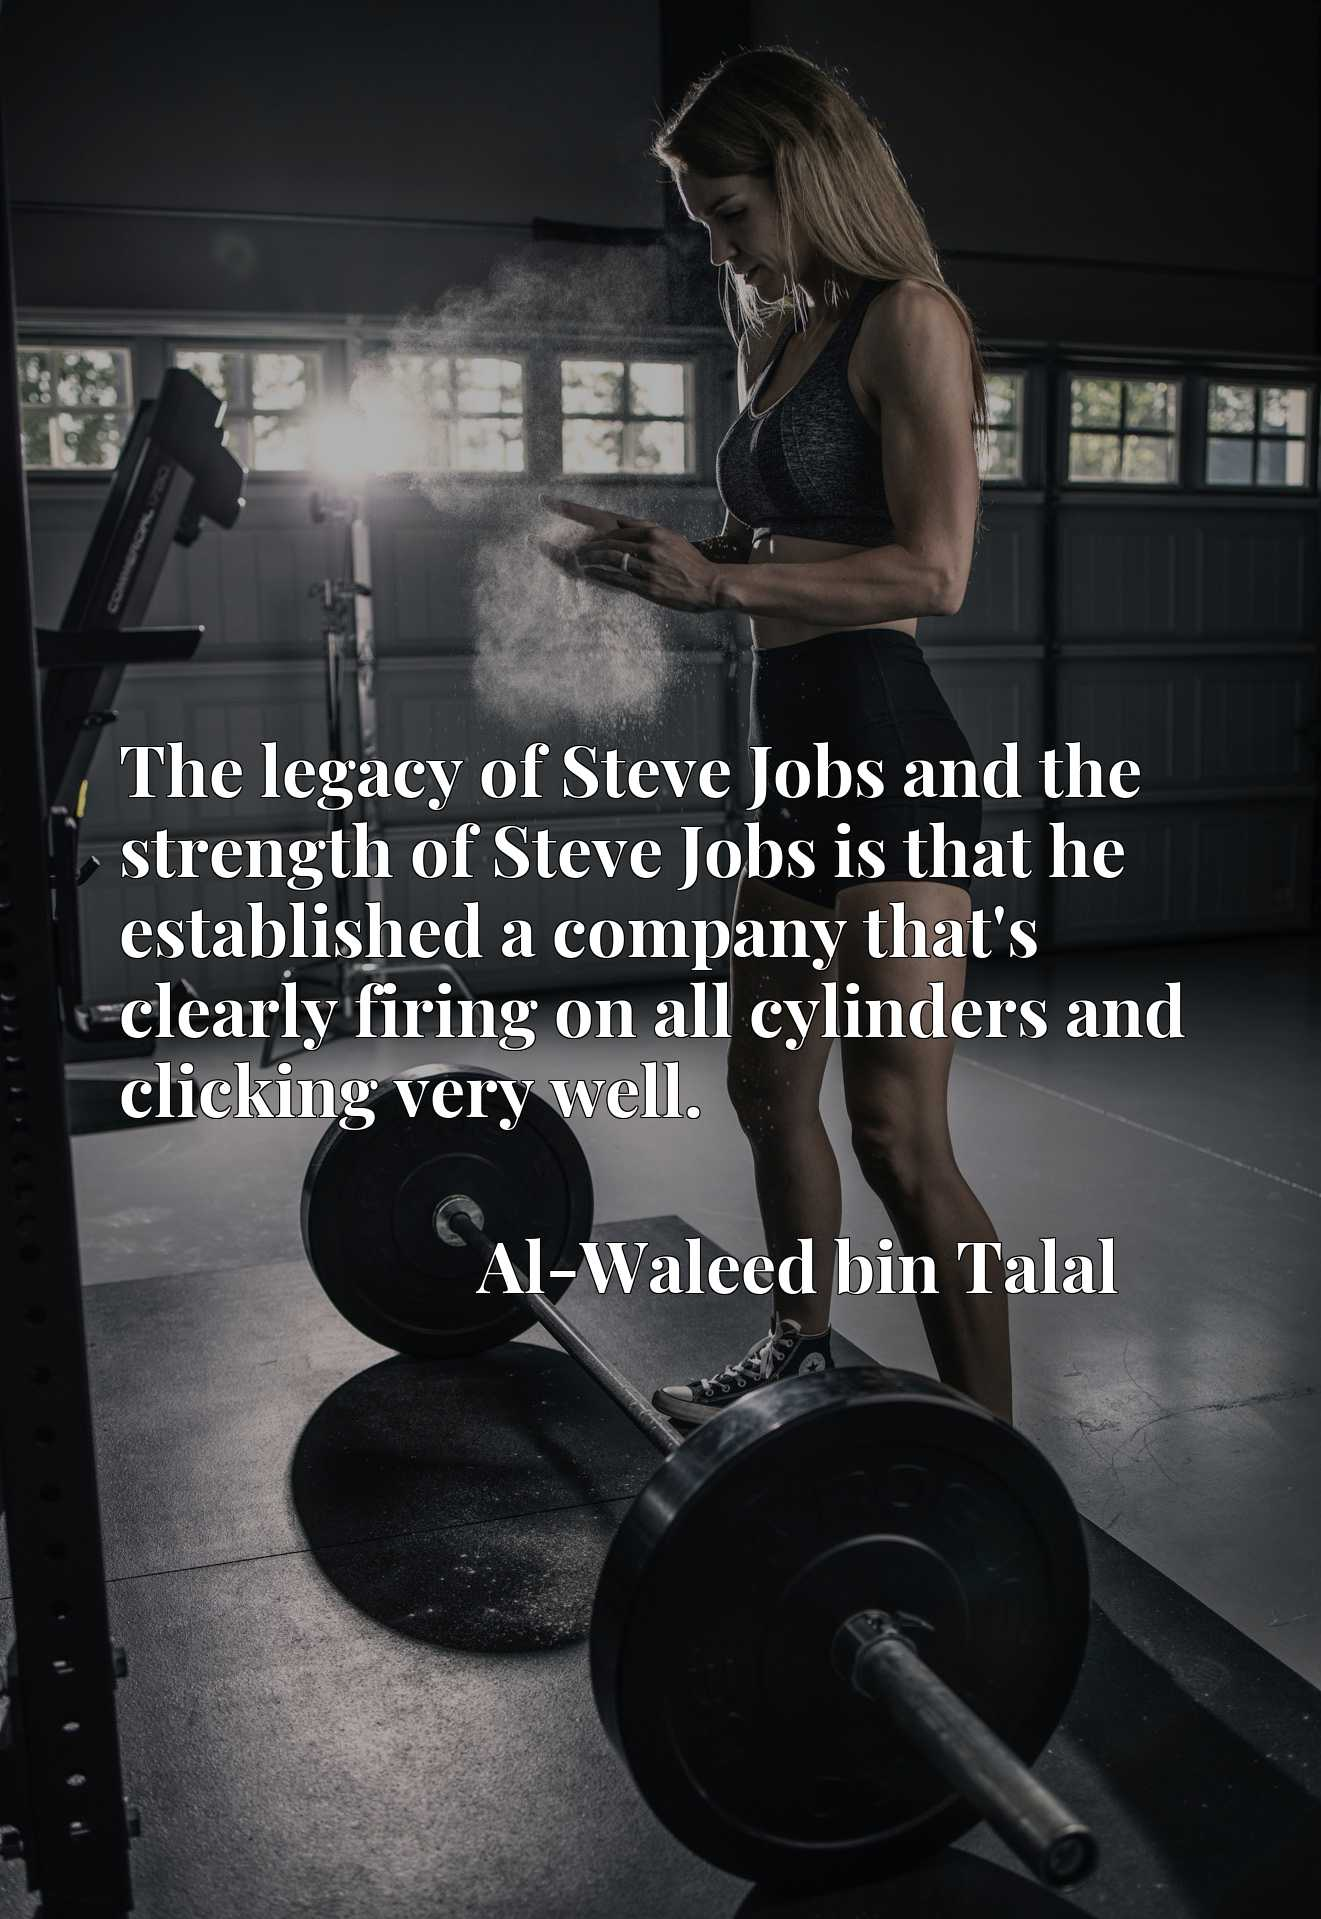 The legacy of Steve Jobs and the strength of Steve Jobs is that he established a company that's clearly firing on all cylinders and clicking very well.